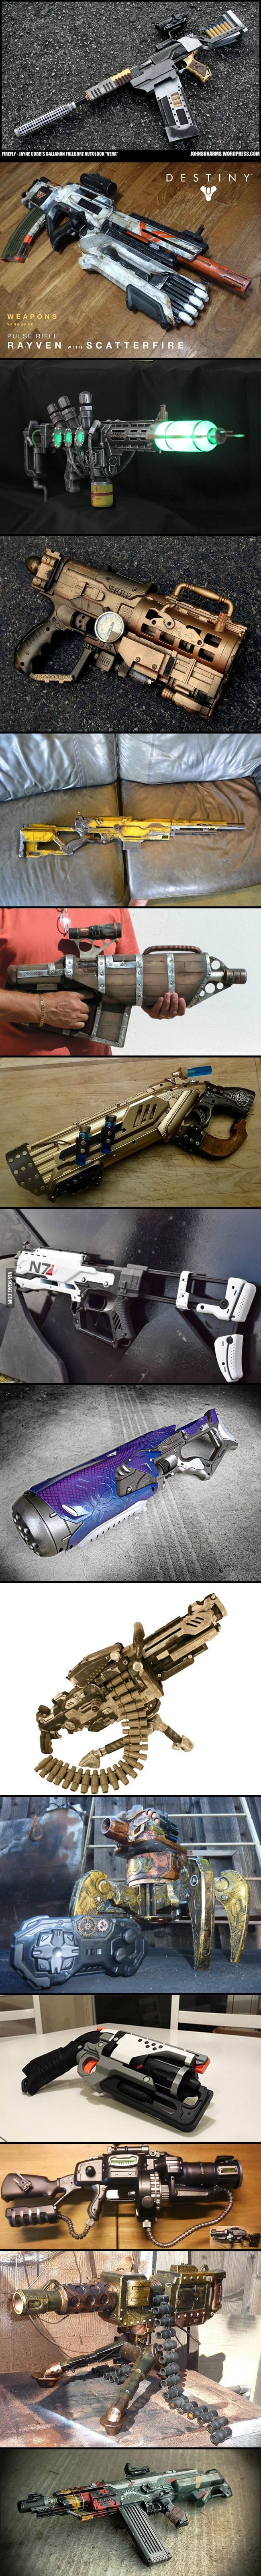 These Custom Nerf Guns Are Just Insane!                              …